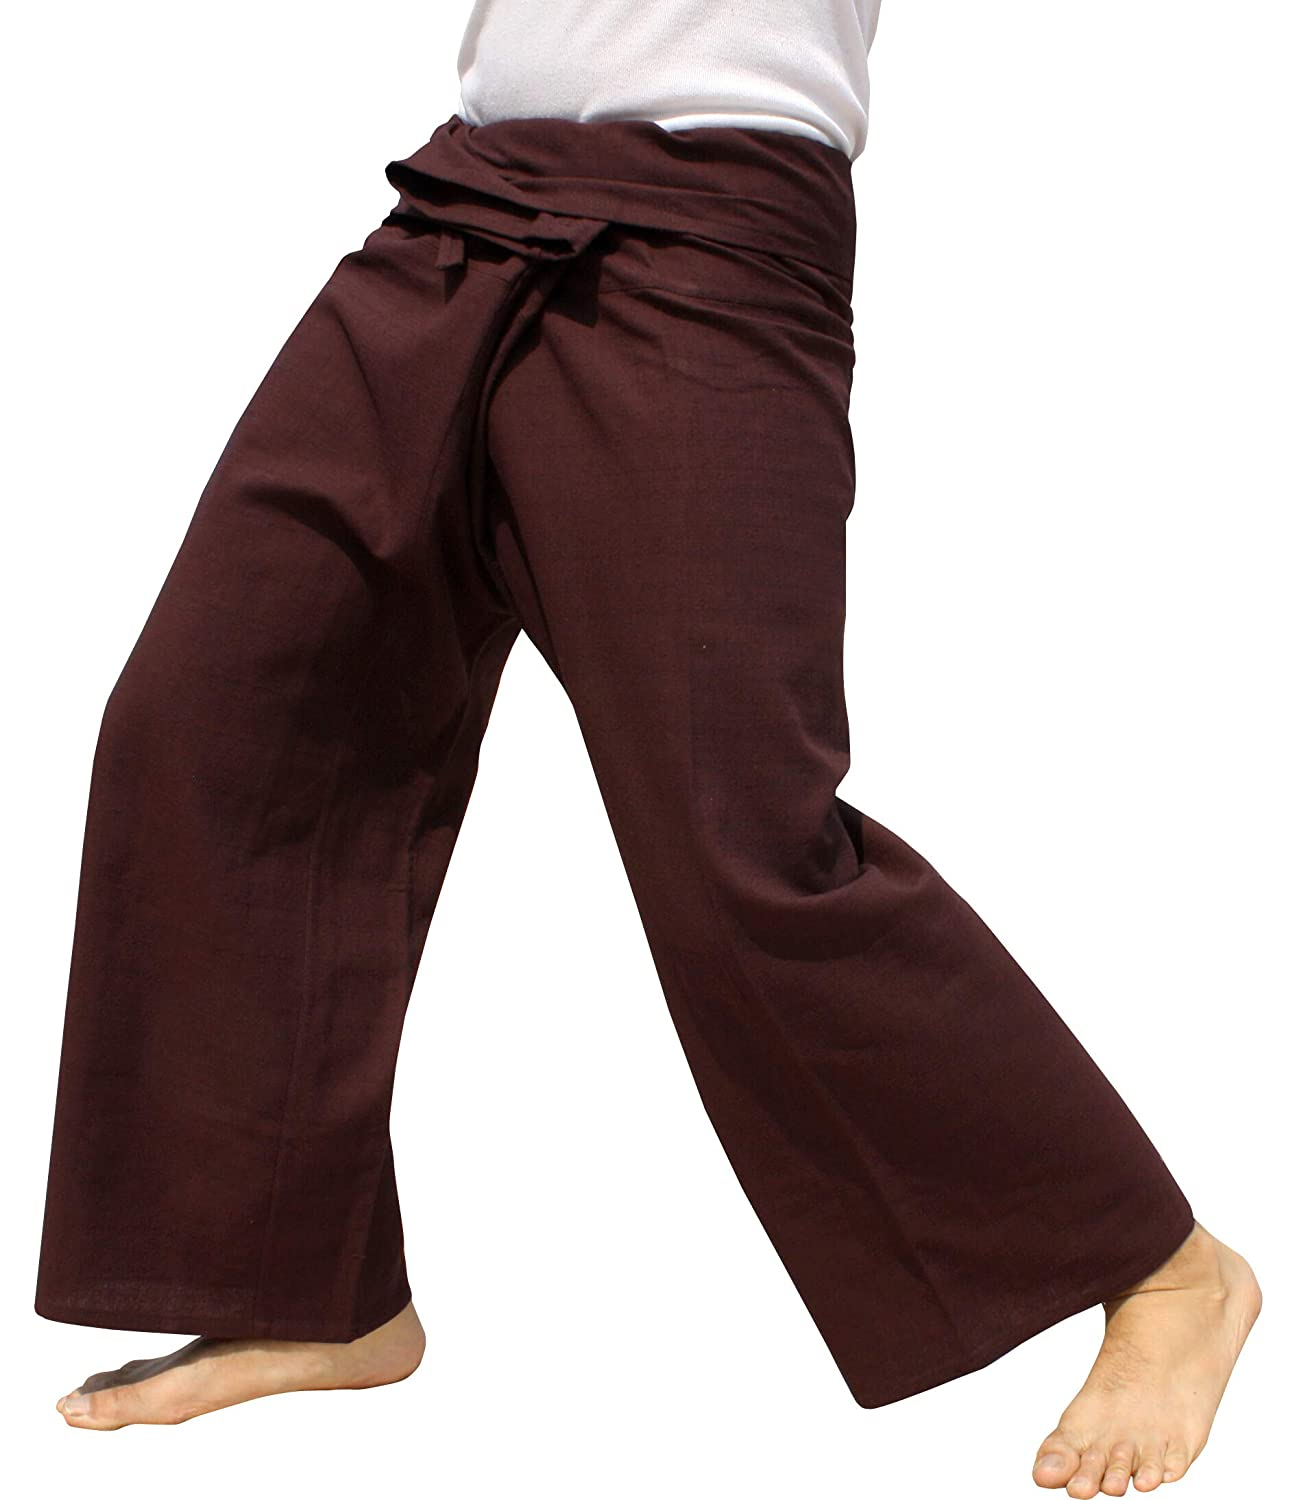 Raan Pah Muang PANTS レディース B07HGVQXJ3 Dark Sienna Brown Medium